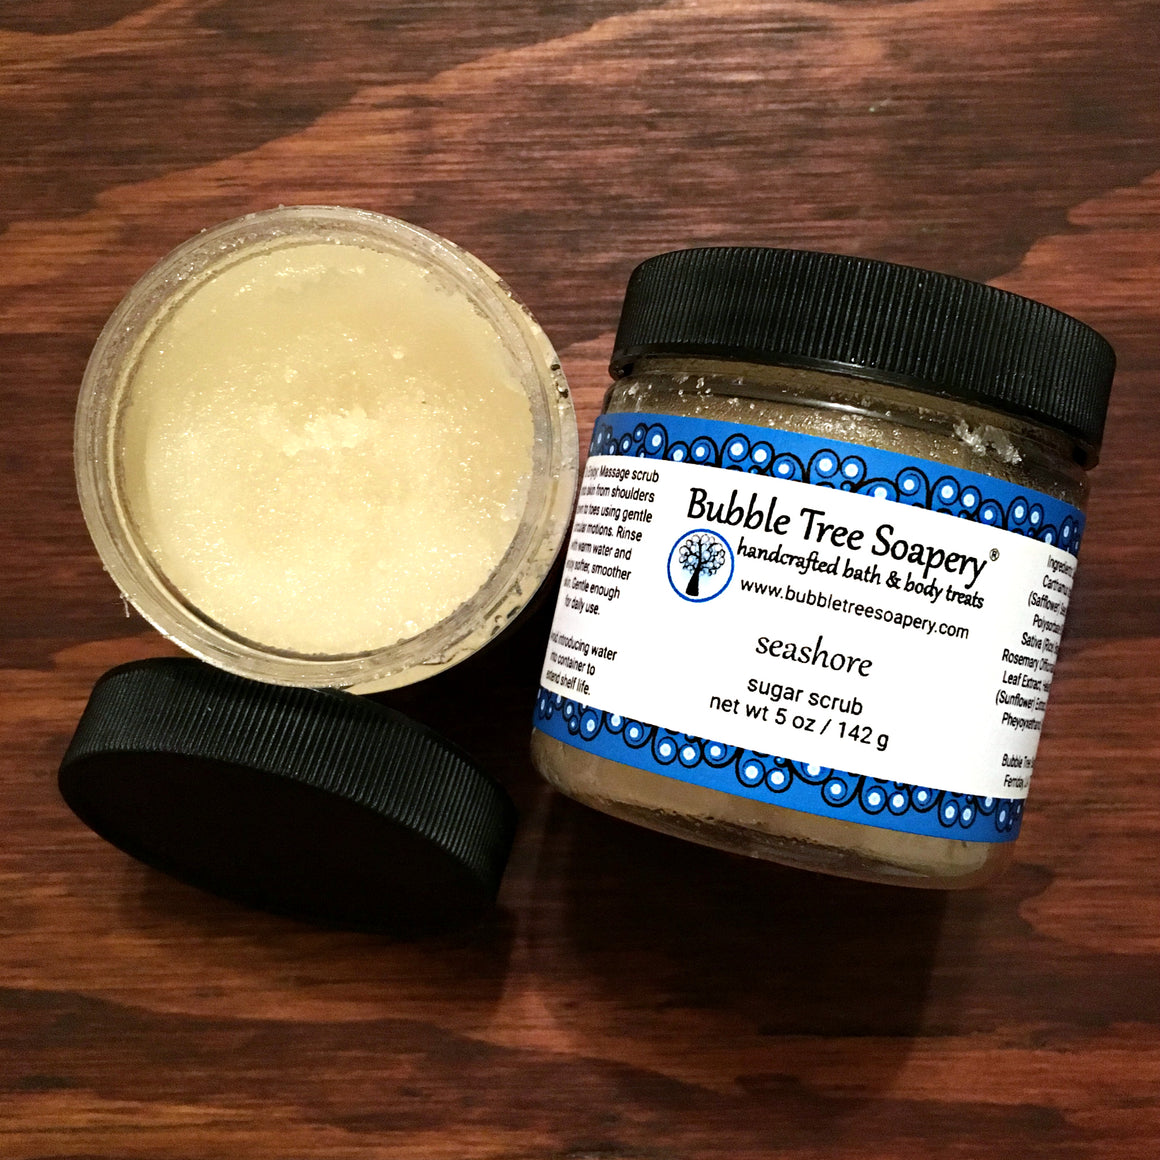 Seashore Sugar Scrub | Bubble Tree Soapery